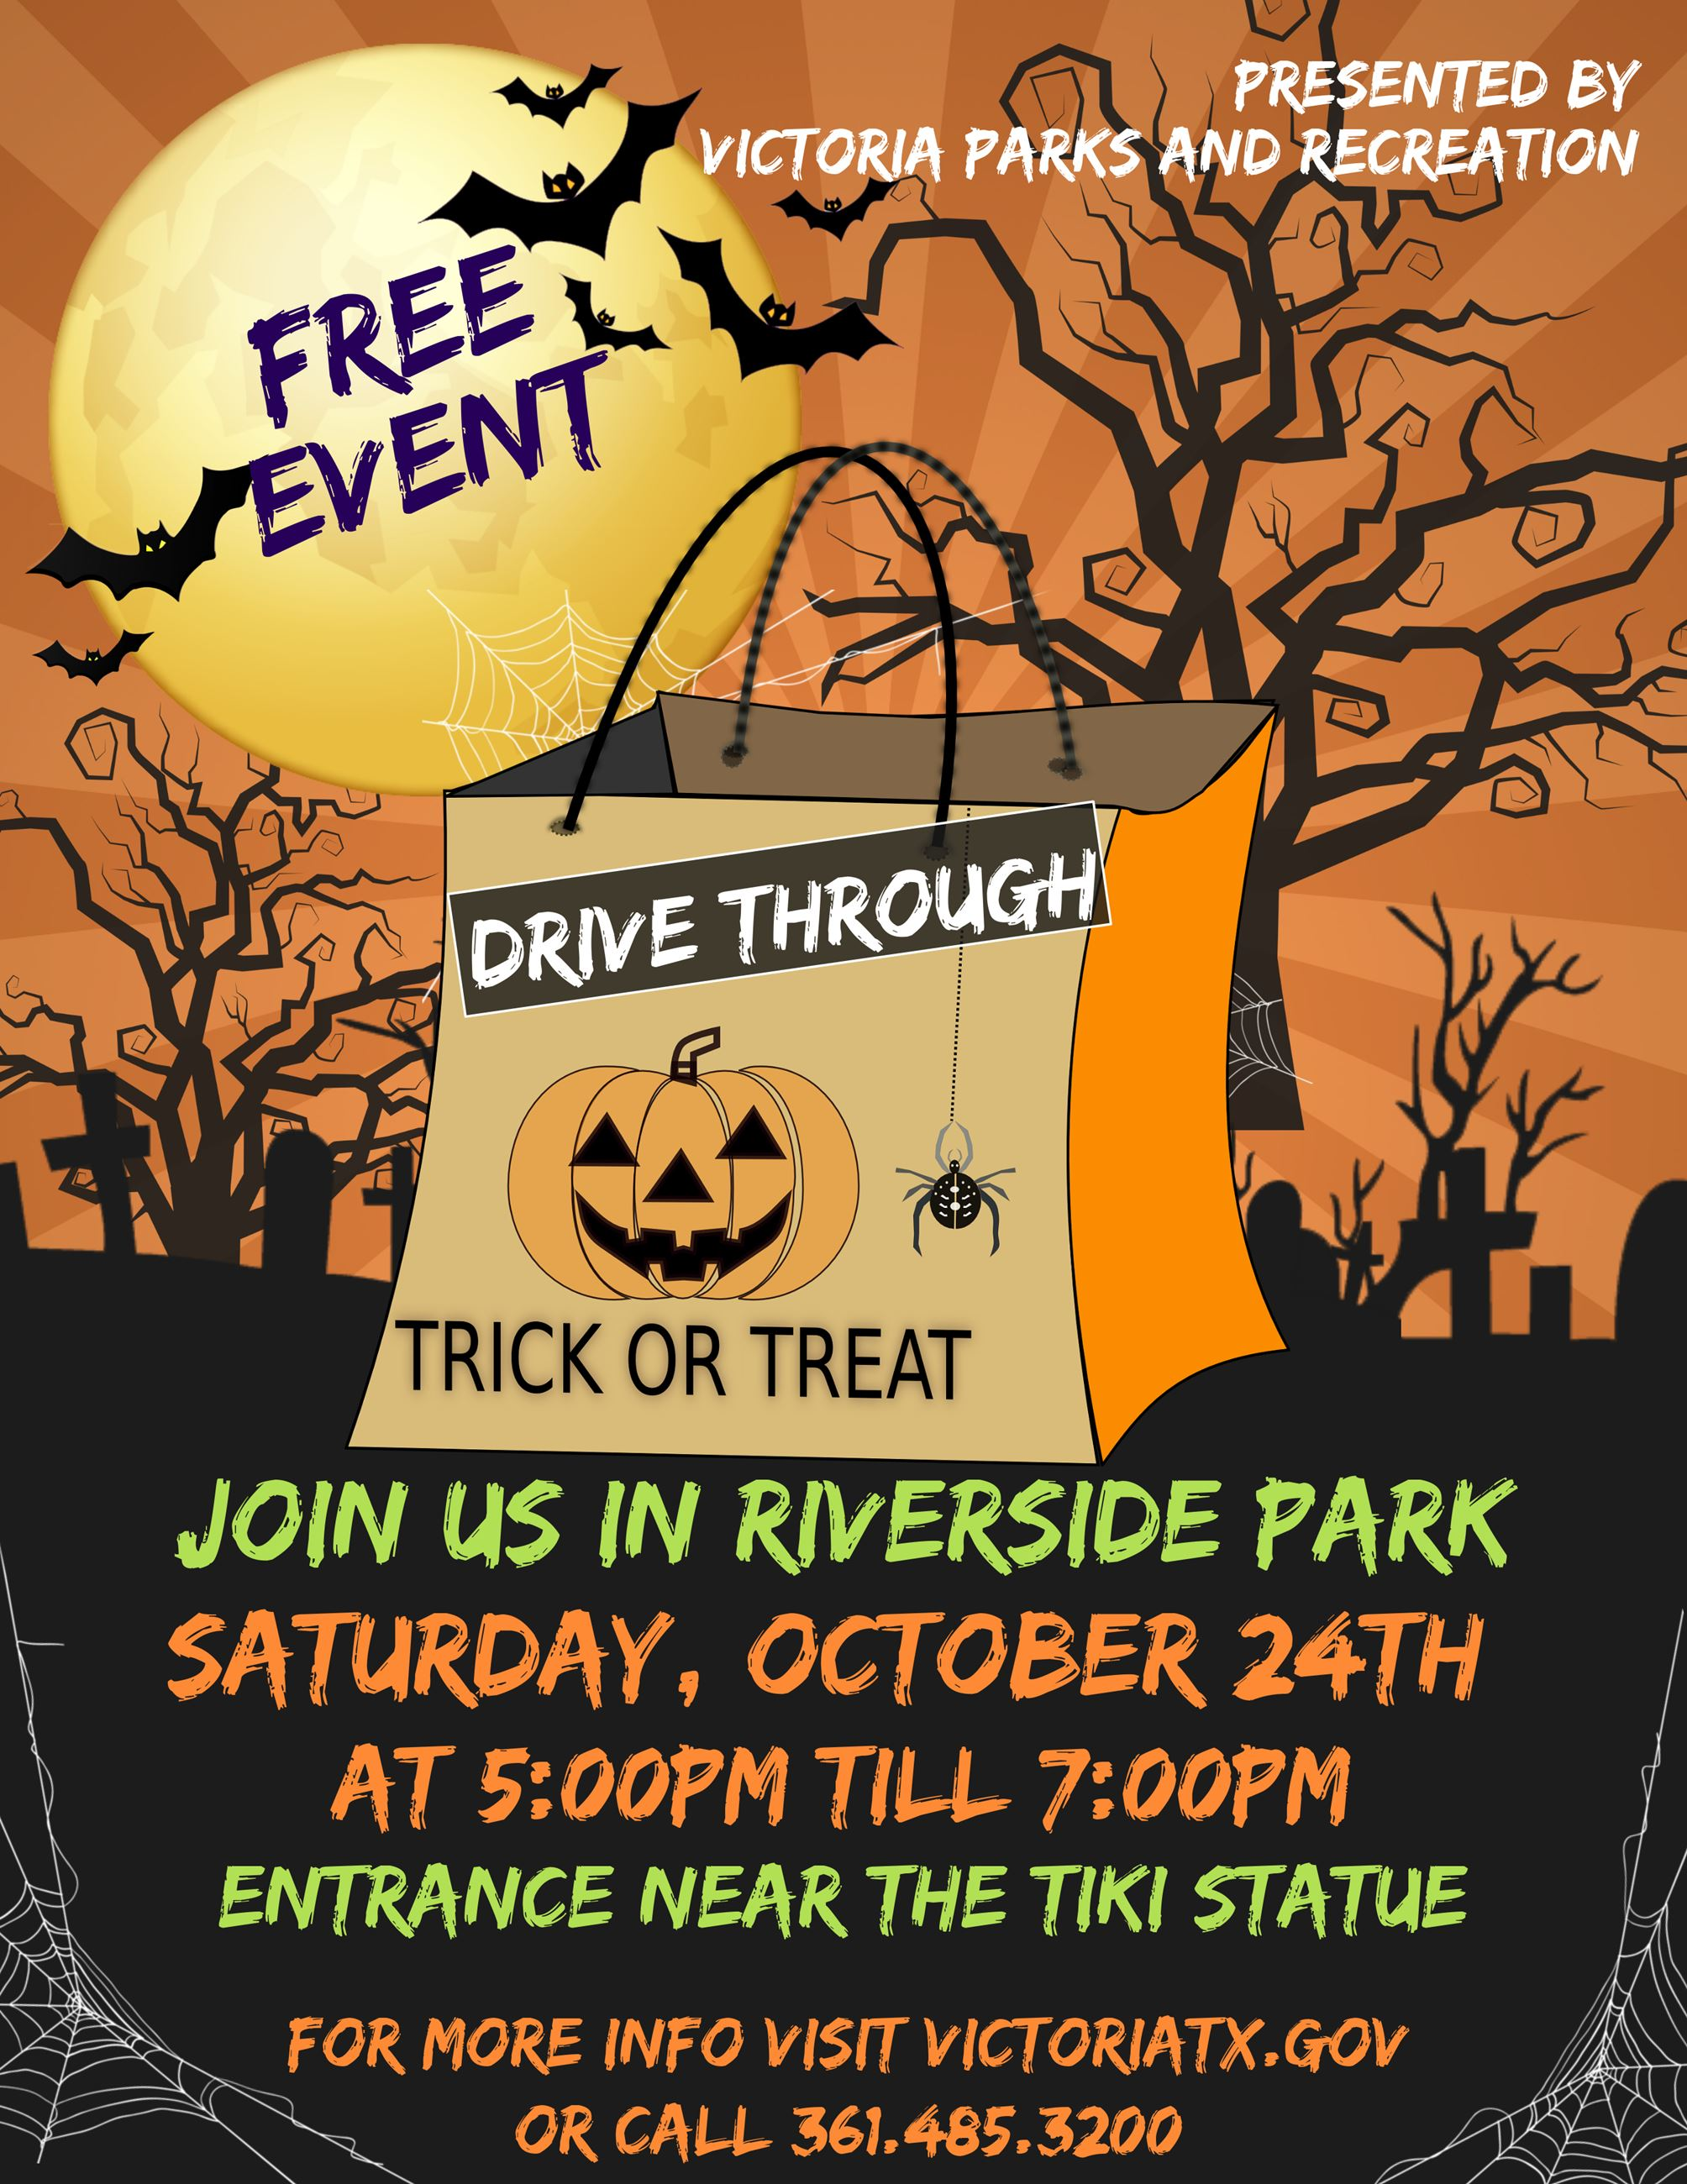 Free event presented by Parks & Recreation. Drive-thru trick-or treat in Riverside Park 5-7 p.m.